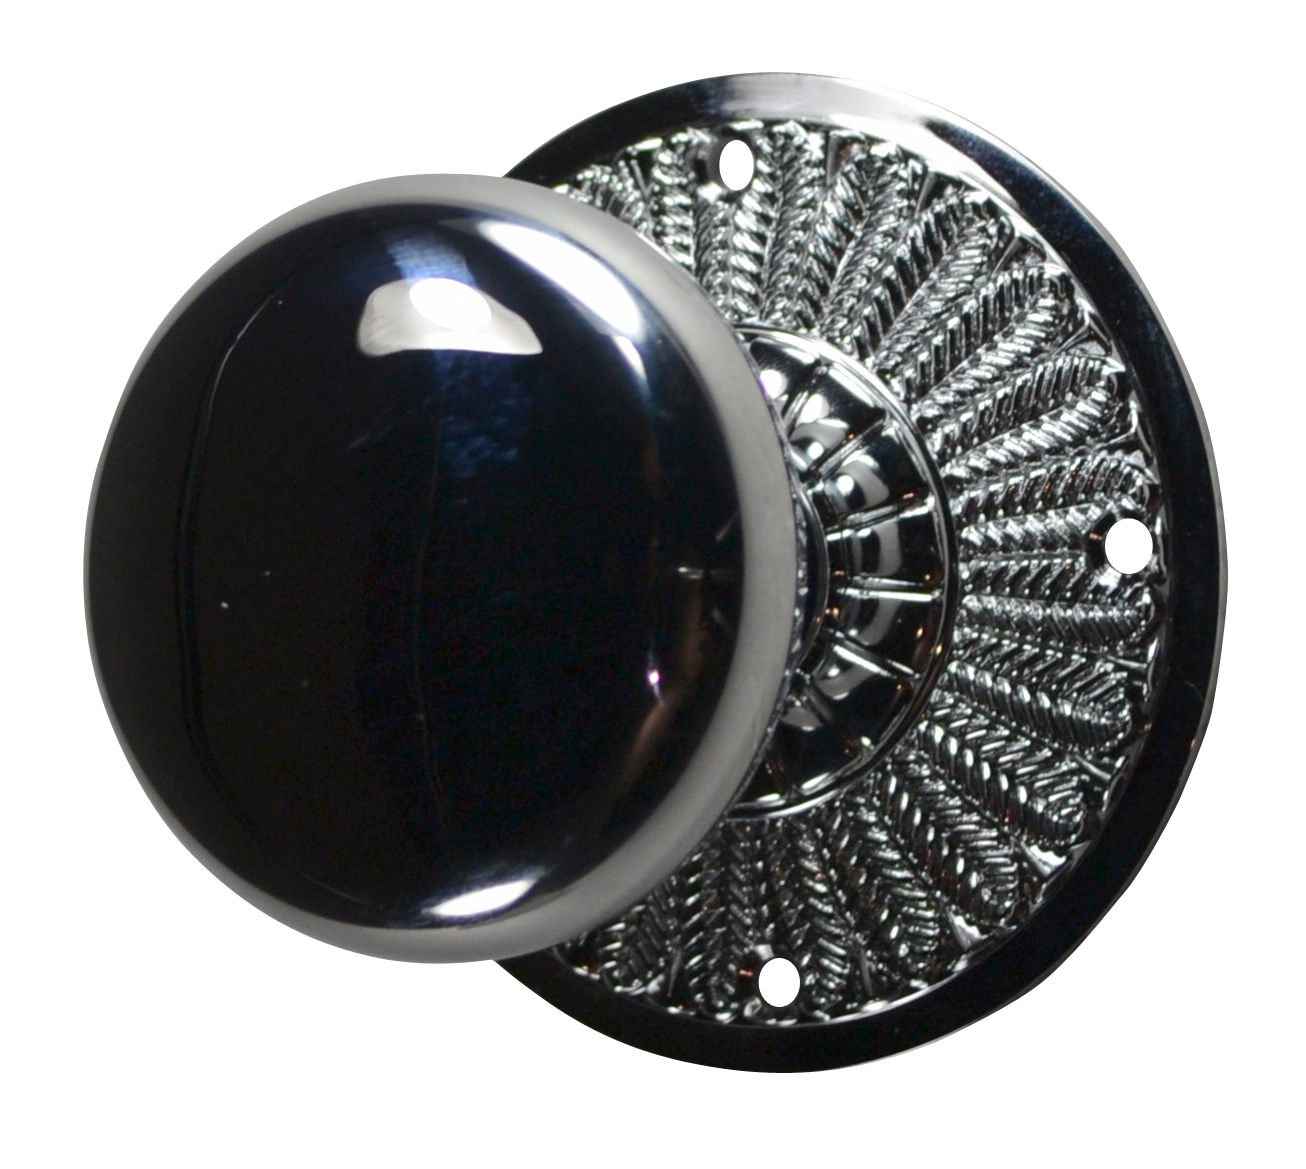 Feathers Round Brass Door Knob (Polished Chrome Finish)